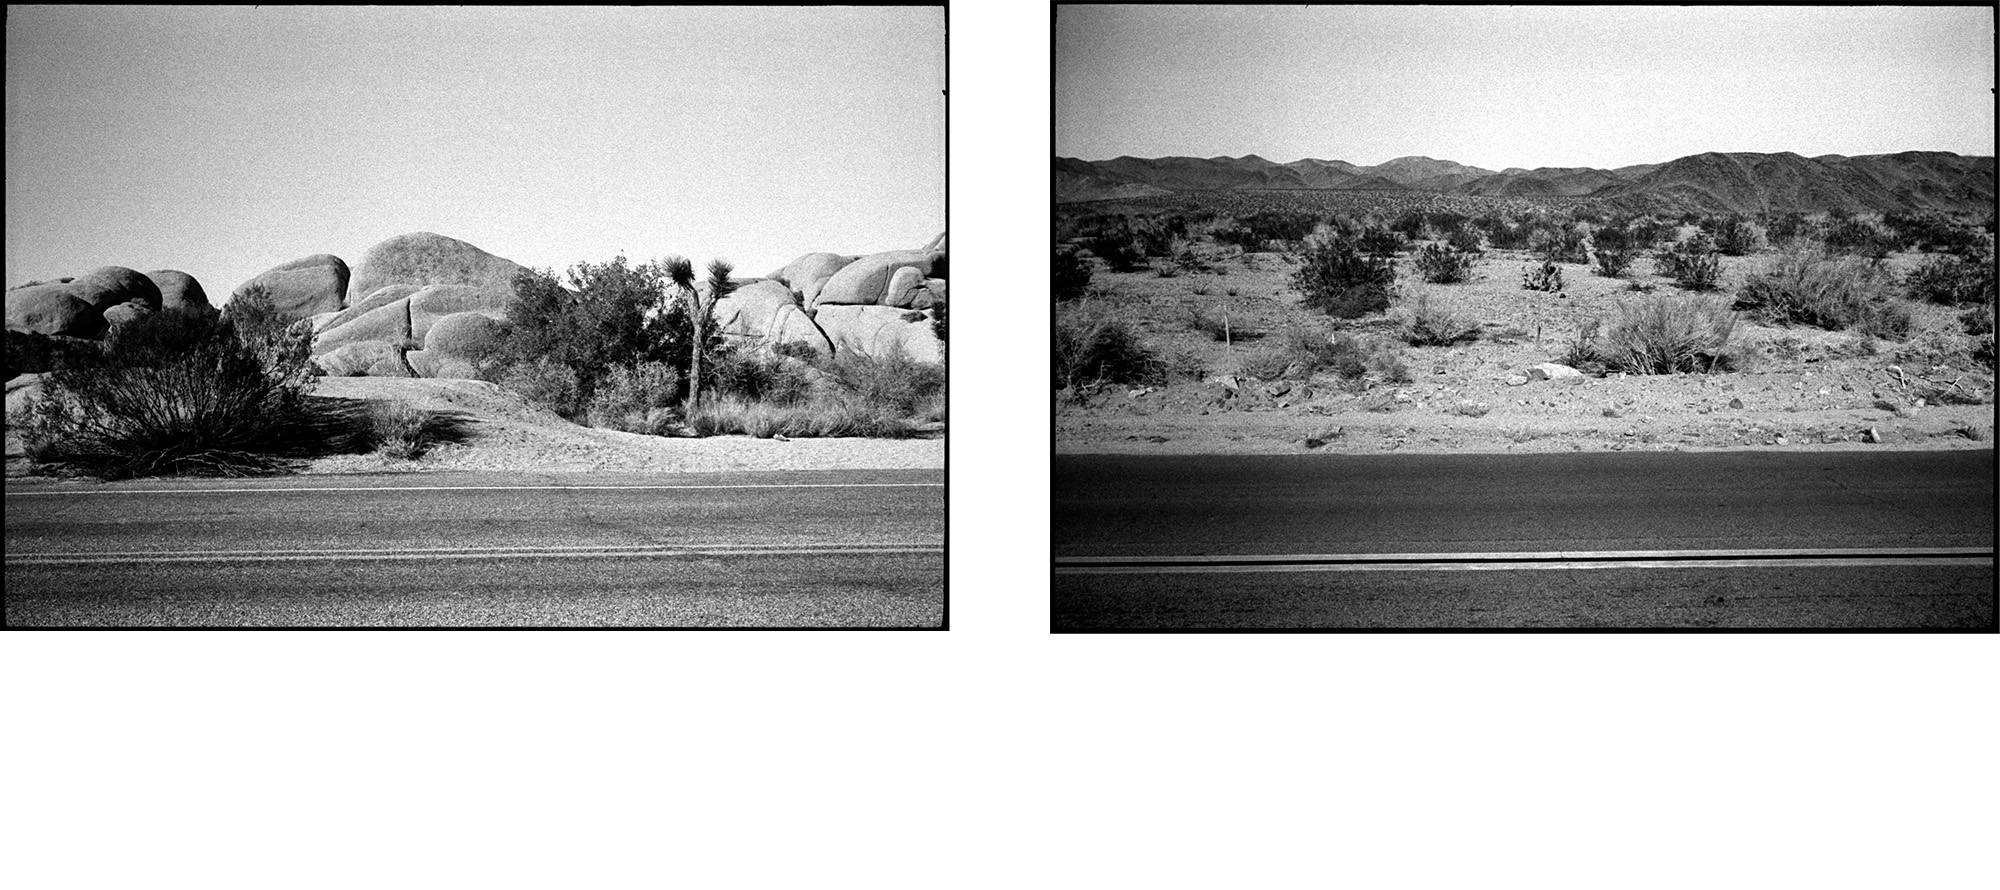 "#0249_22A / 0249_24A - Joshua Tree National Park, California / 2013   Excerpts from the book  ""Fragments""    Signed Copies   On Demand @Blurb   Online Shop"